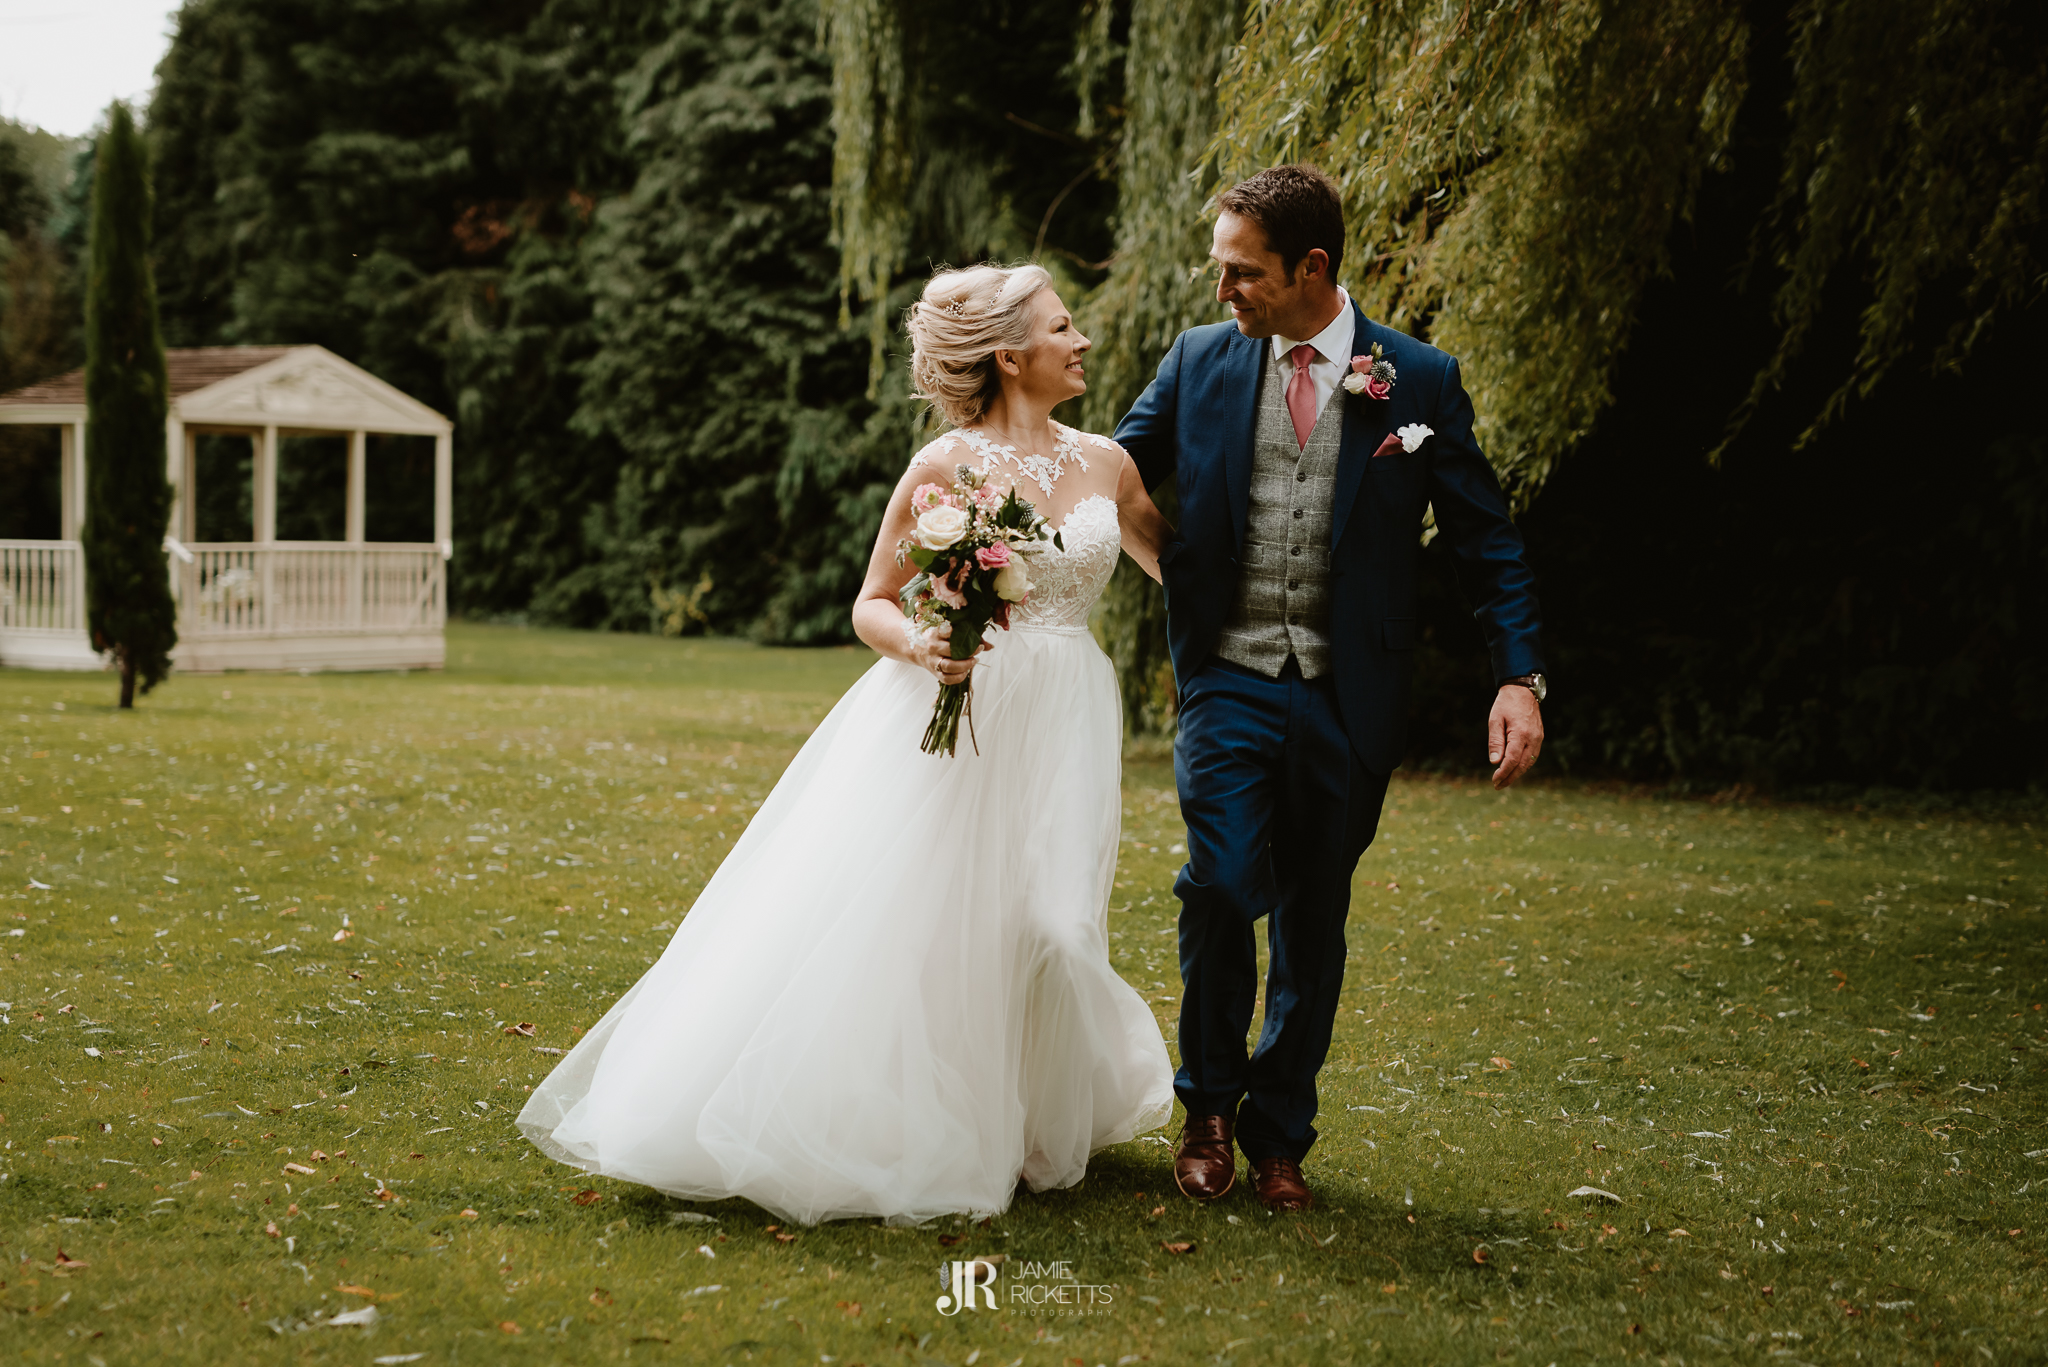 Wroxeter-Hotel-Wedding-Photography-In-Shropshire-By-Shropshire-Wedding-Photographer-Jamie-Ricketts-107.JPG